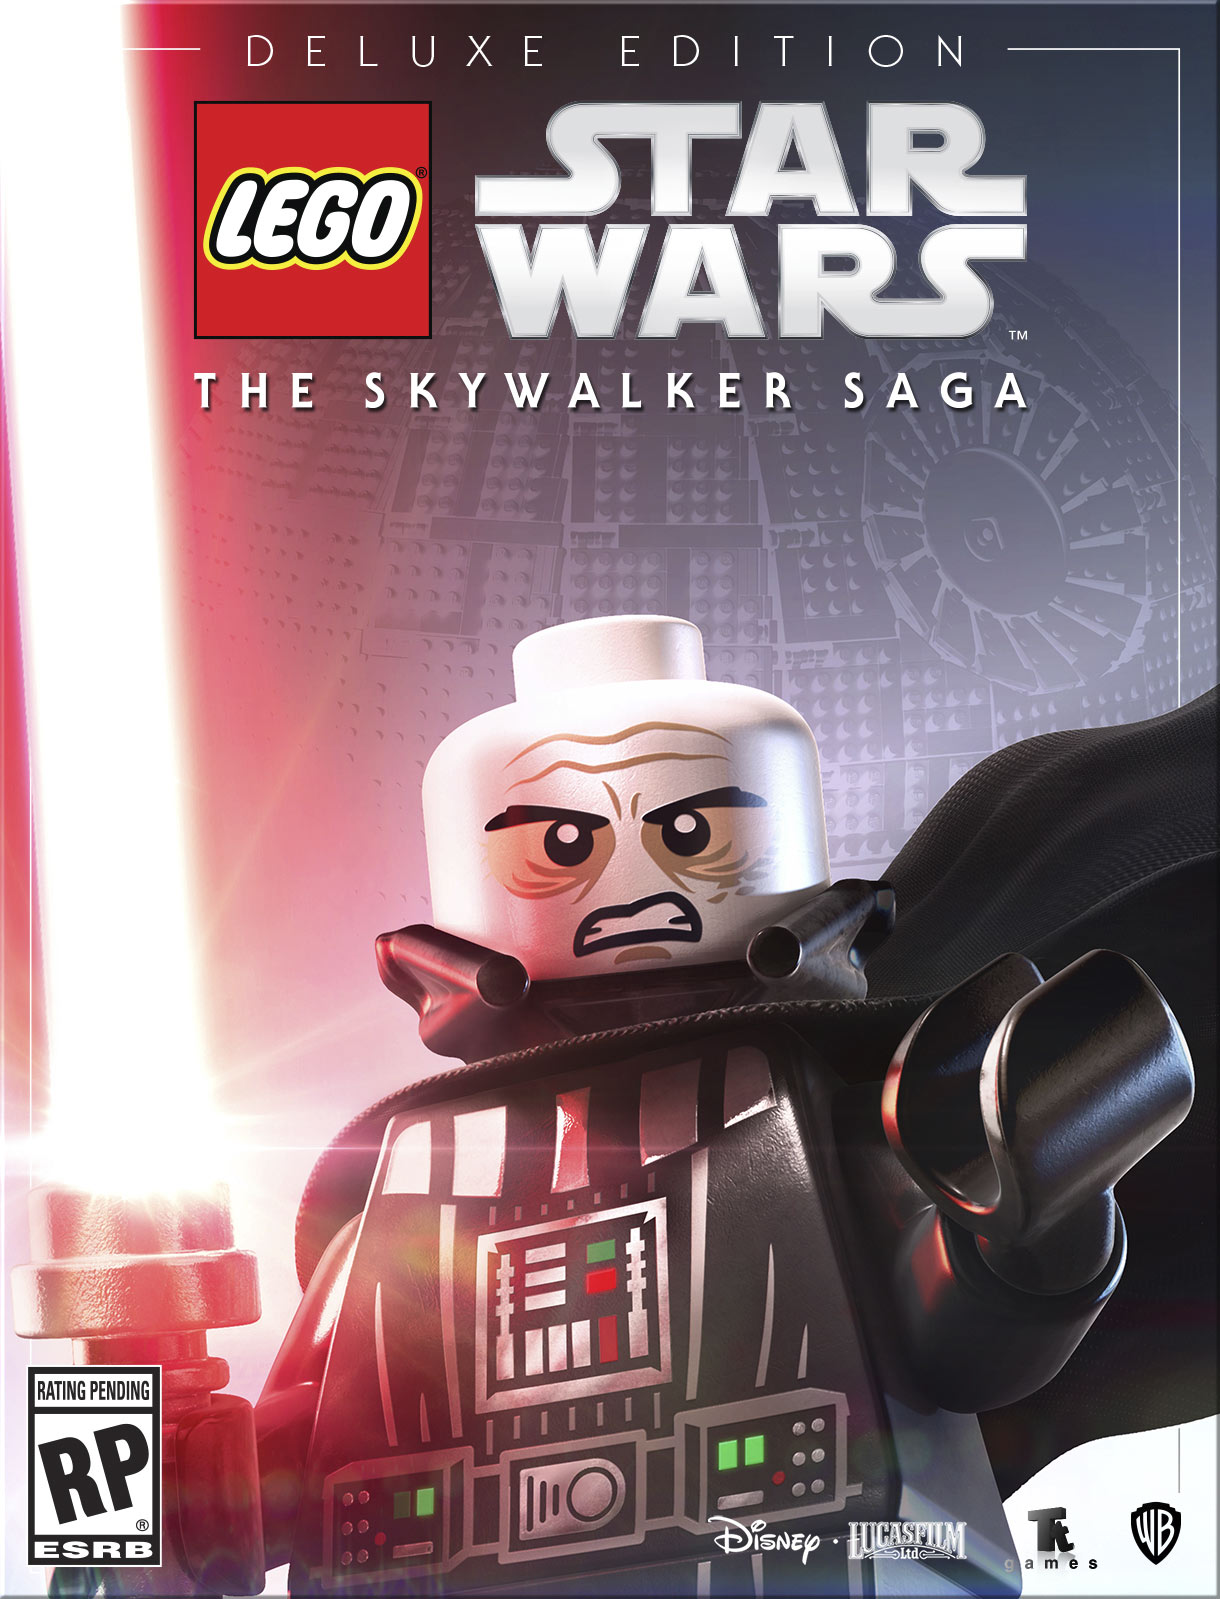 LEGO Star Wars: The Skywalker Saga Deluxe Edition box art without helmet